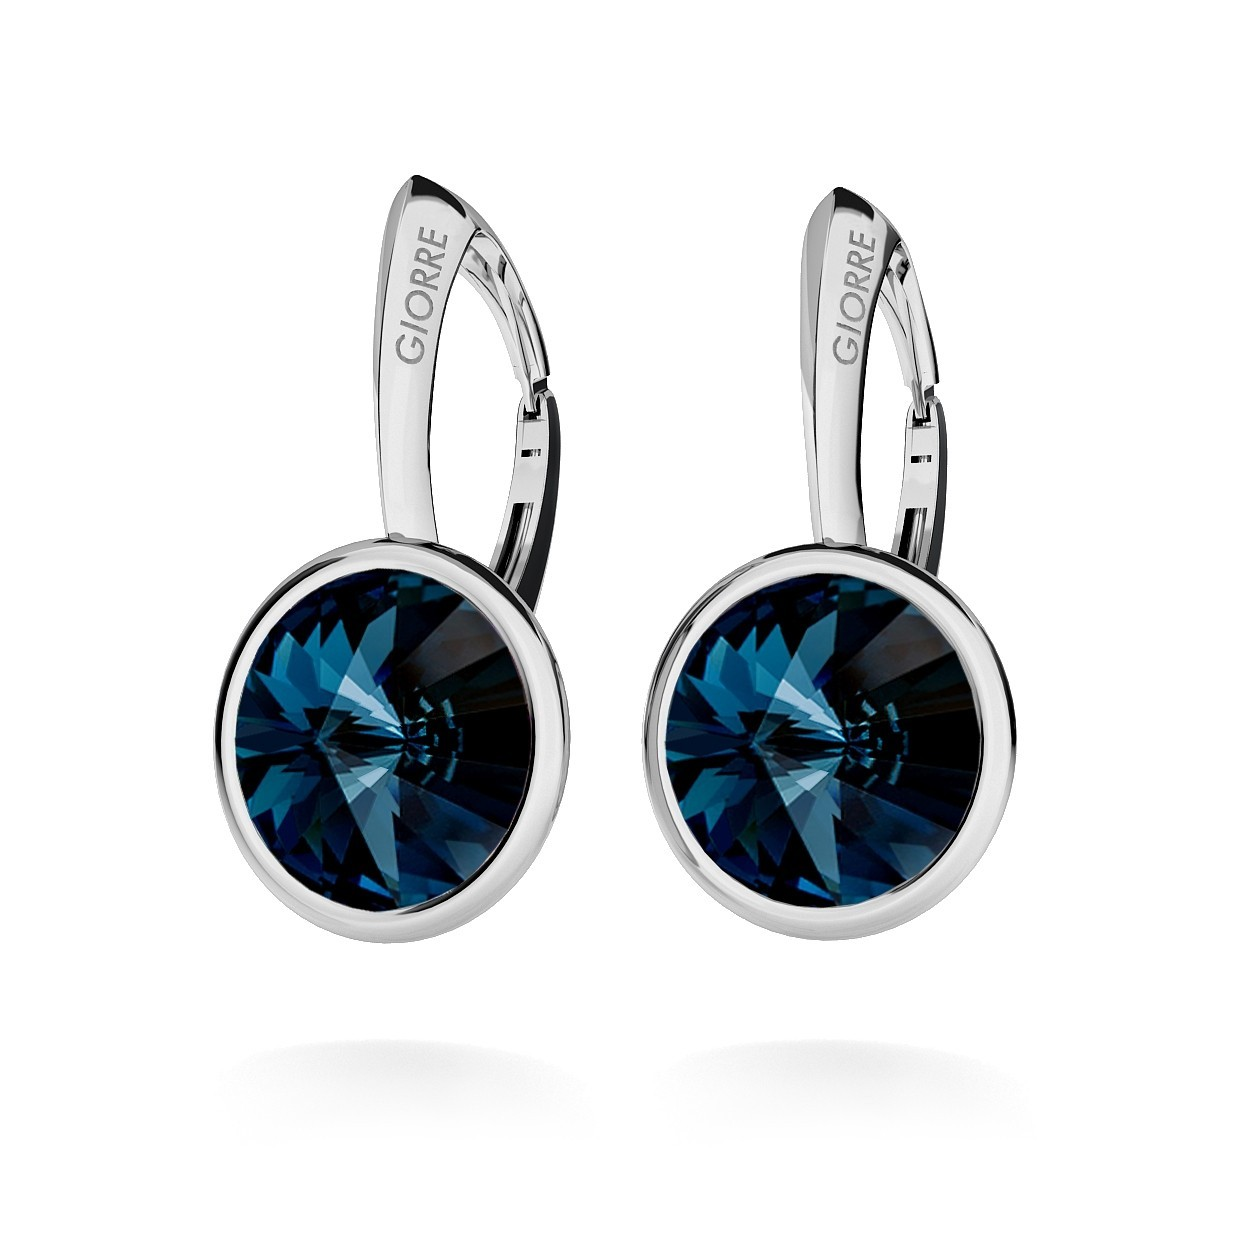 RIVOLI EARRINGS, SWAROVSKI 1122 MM 10, STERLING SILVER (925) RHODIUM OR GOLD PLATED